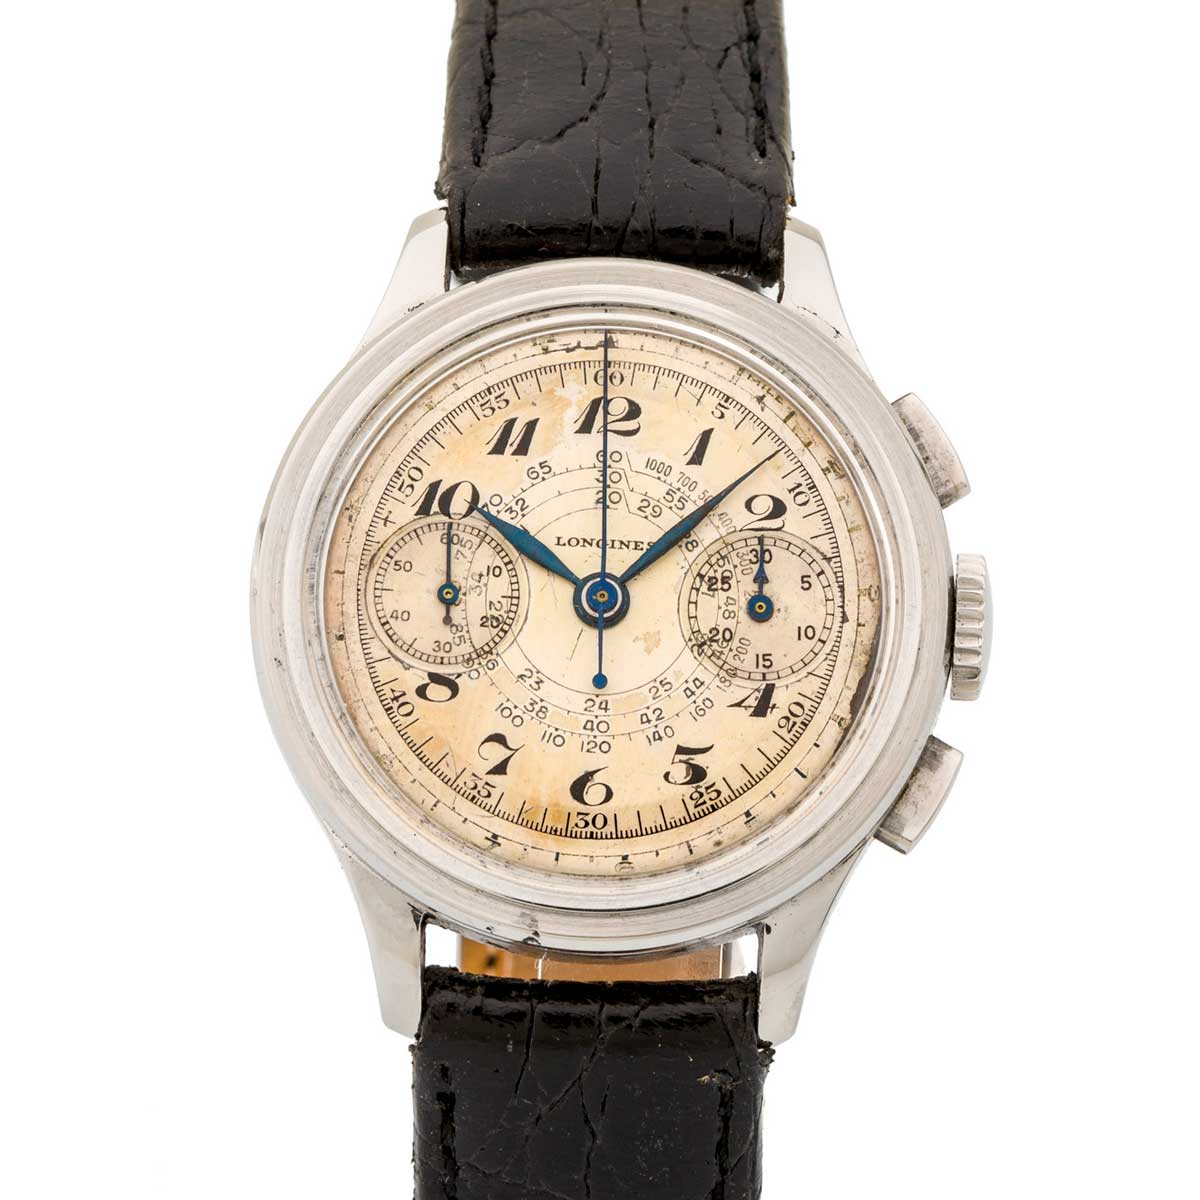 A Longines Ref. 20448 fly-back chronograph with 13ZN calibre (Image: Antiquorum)